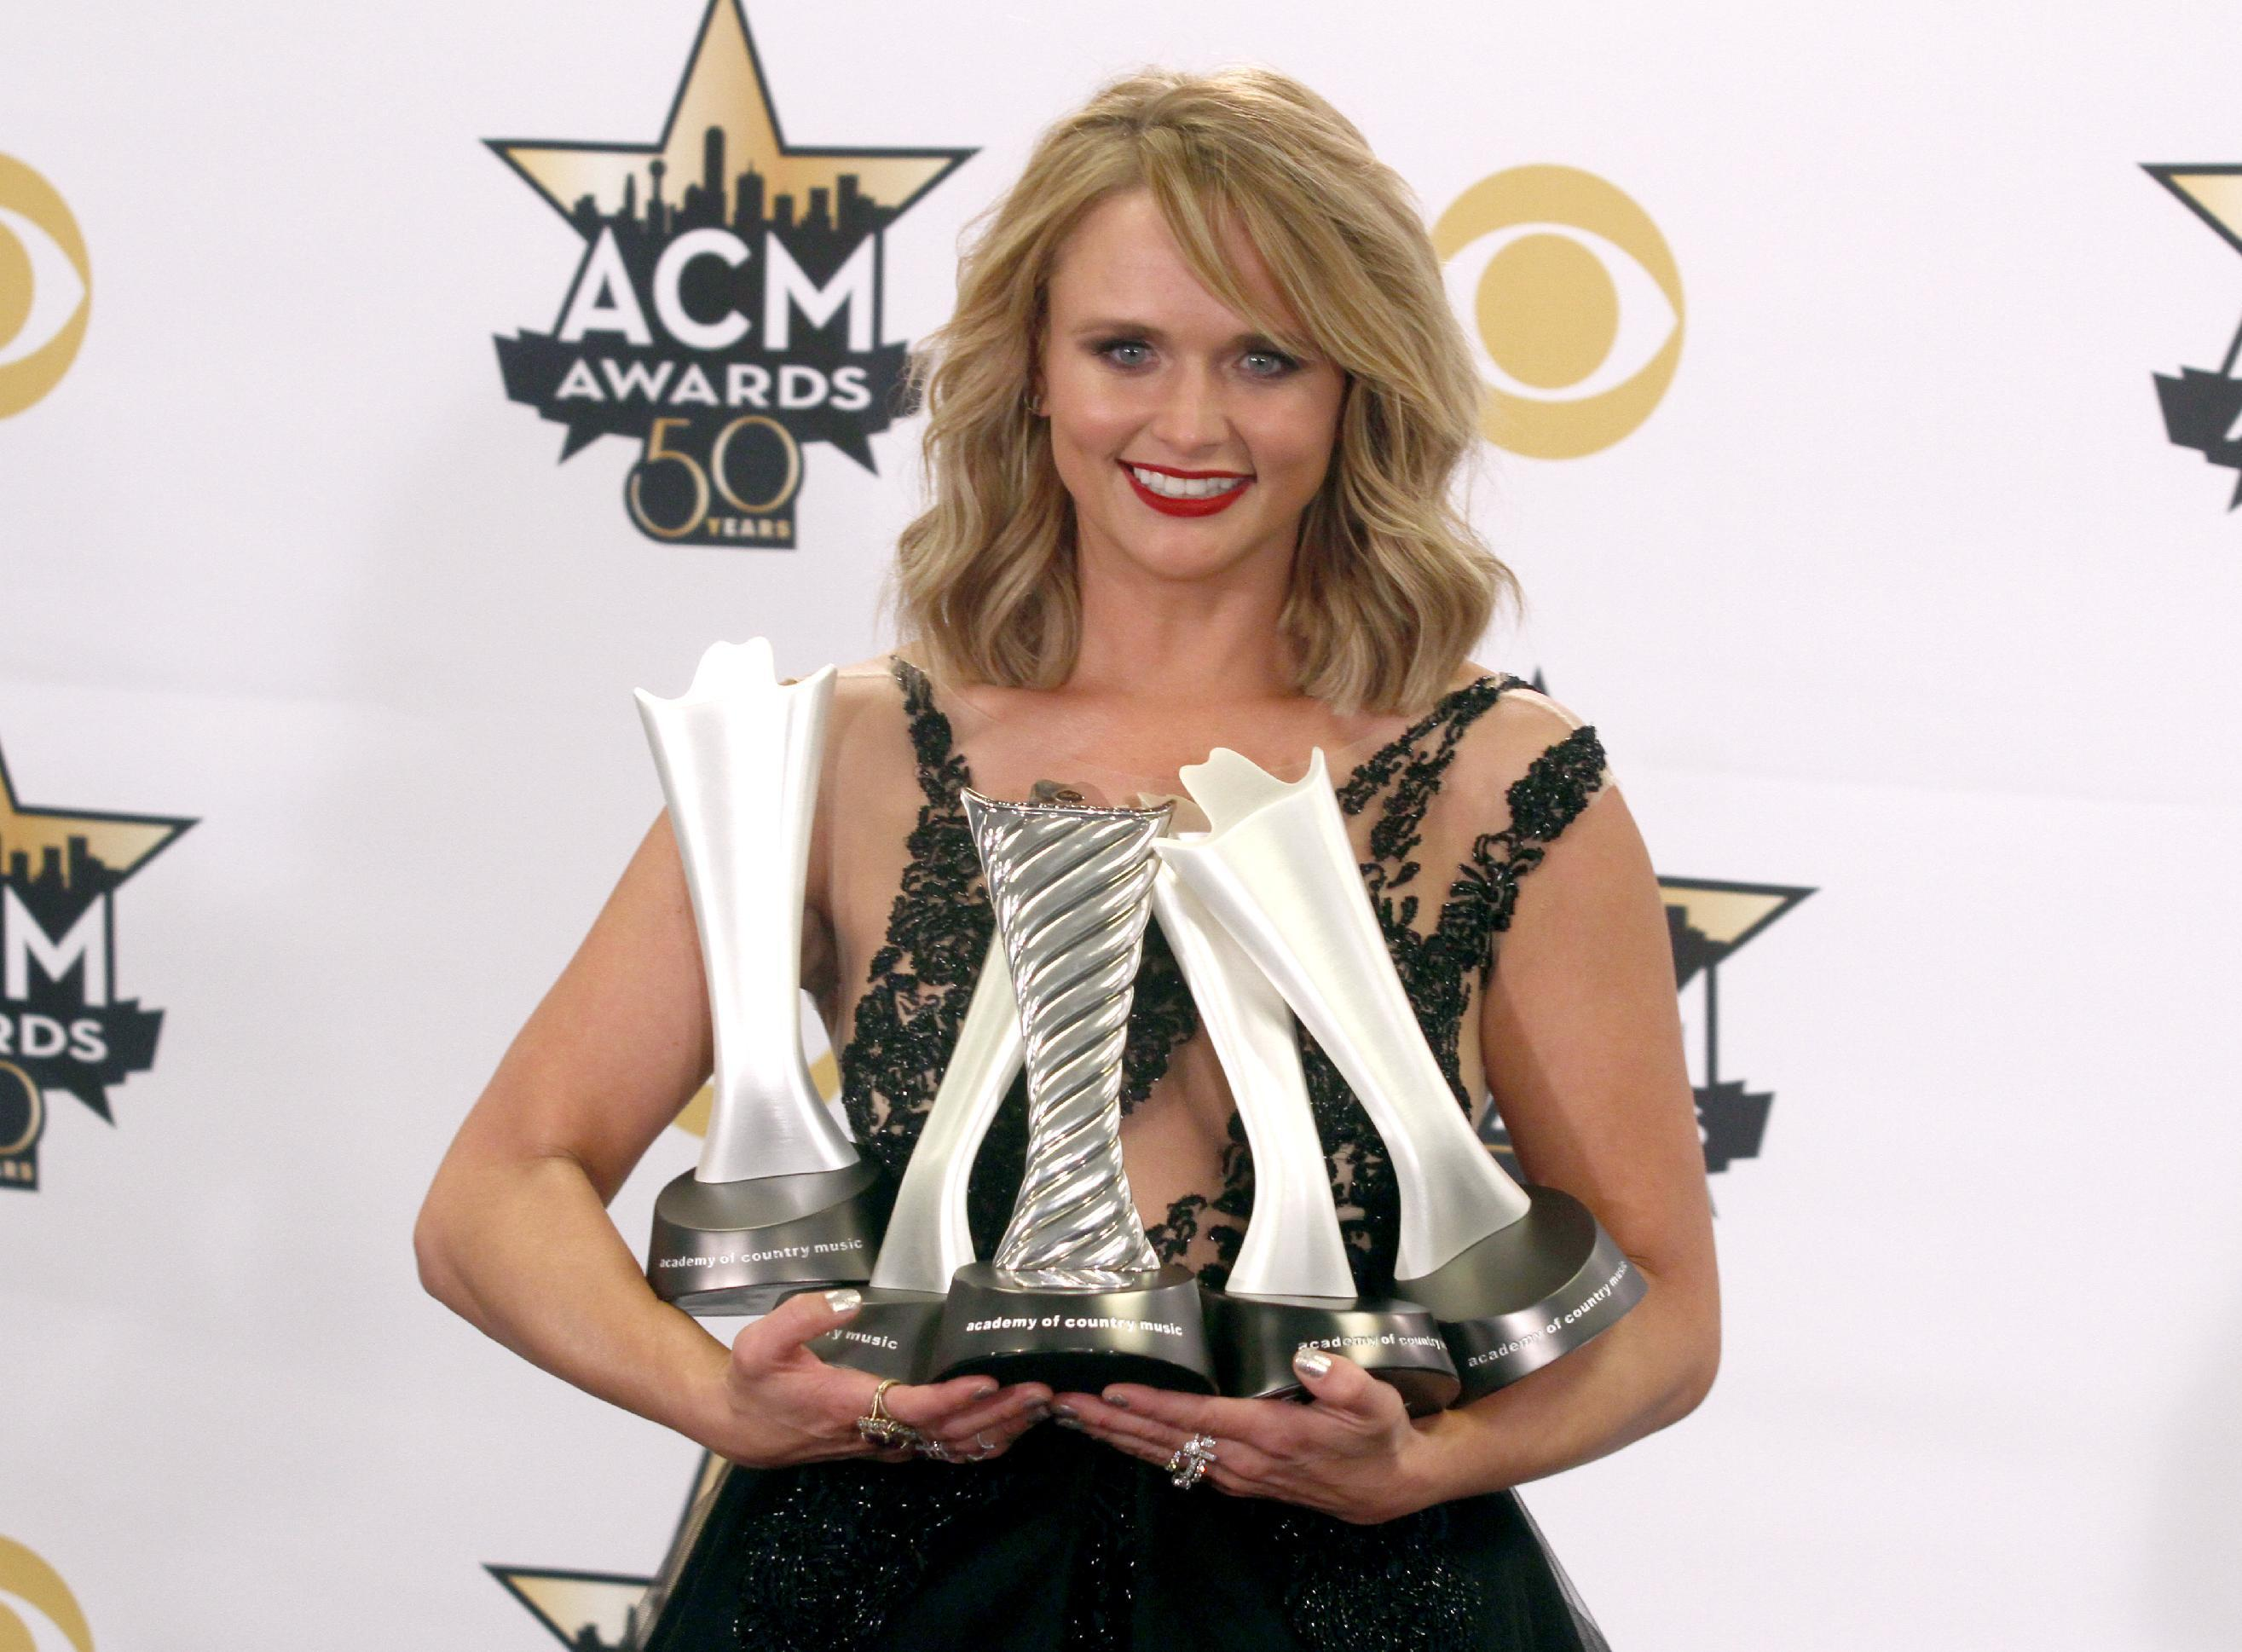 ACM Awards: Miranda Lambert, Luke Bryan, Taylor Swift shine